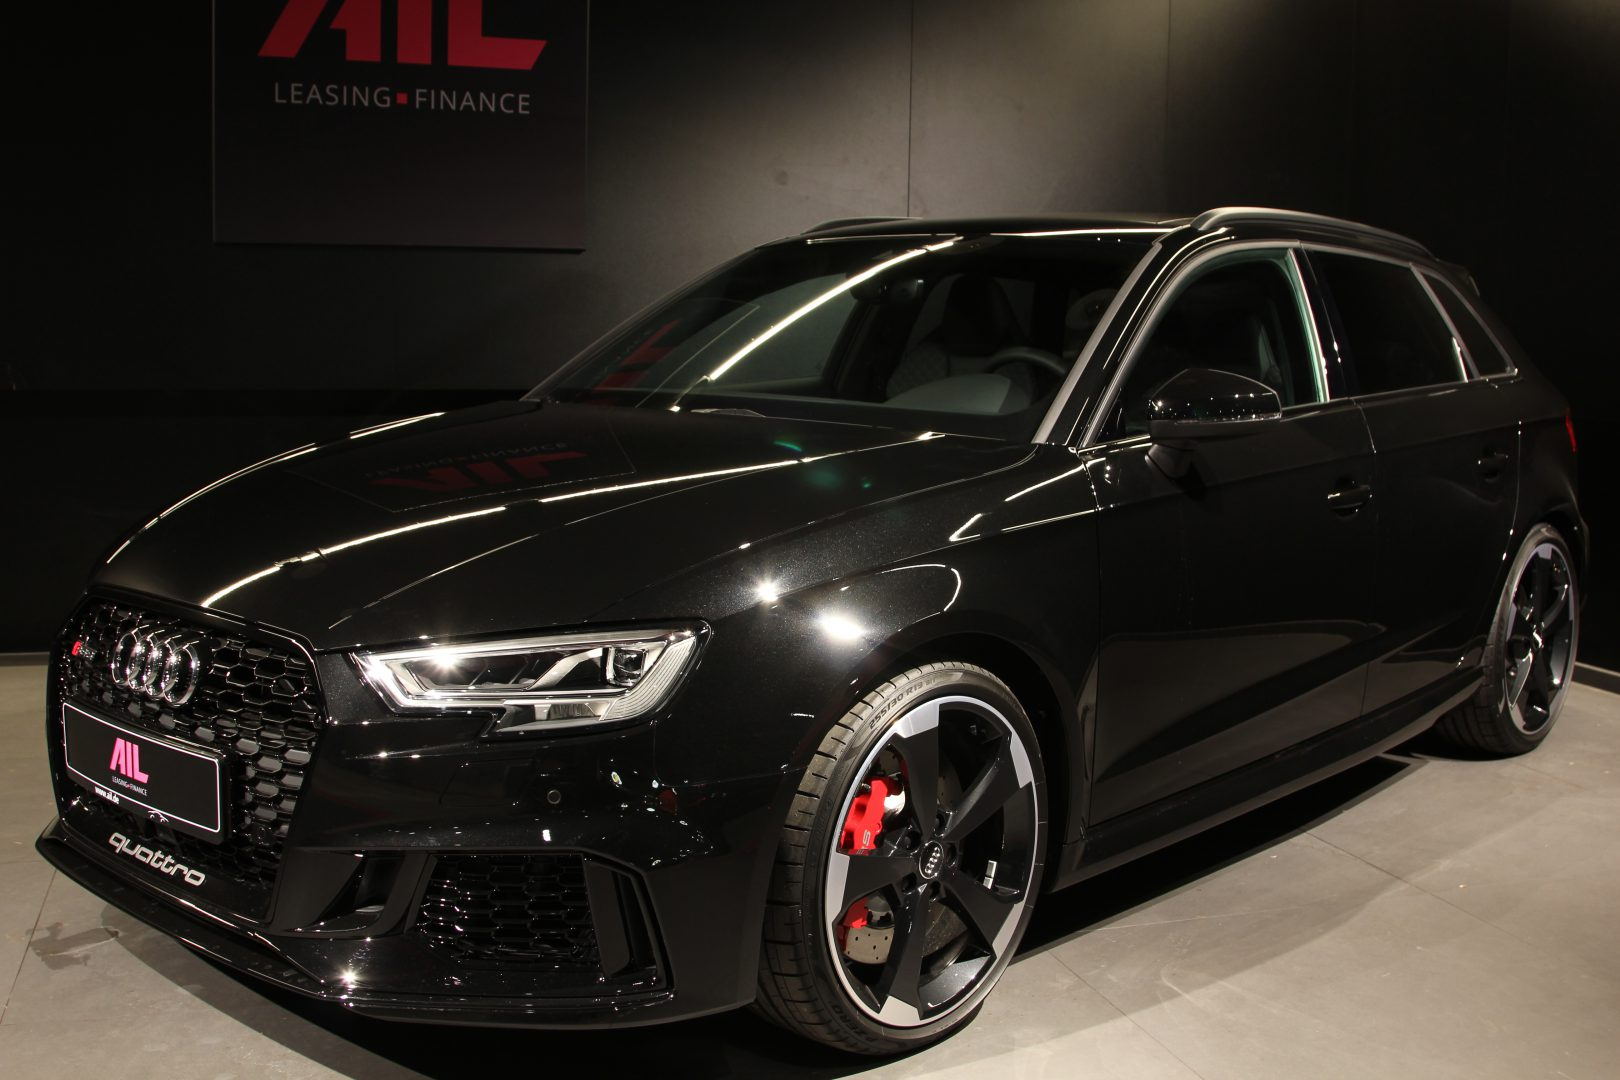 AIL Audi RS3 Sportback Matrix Panorama Virtual Cockpit 8